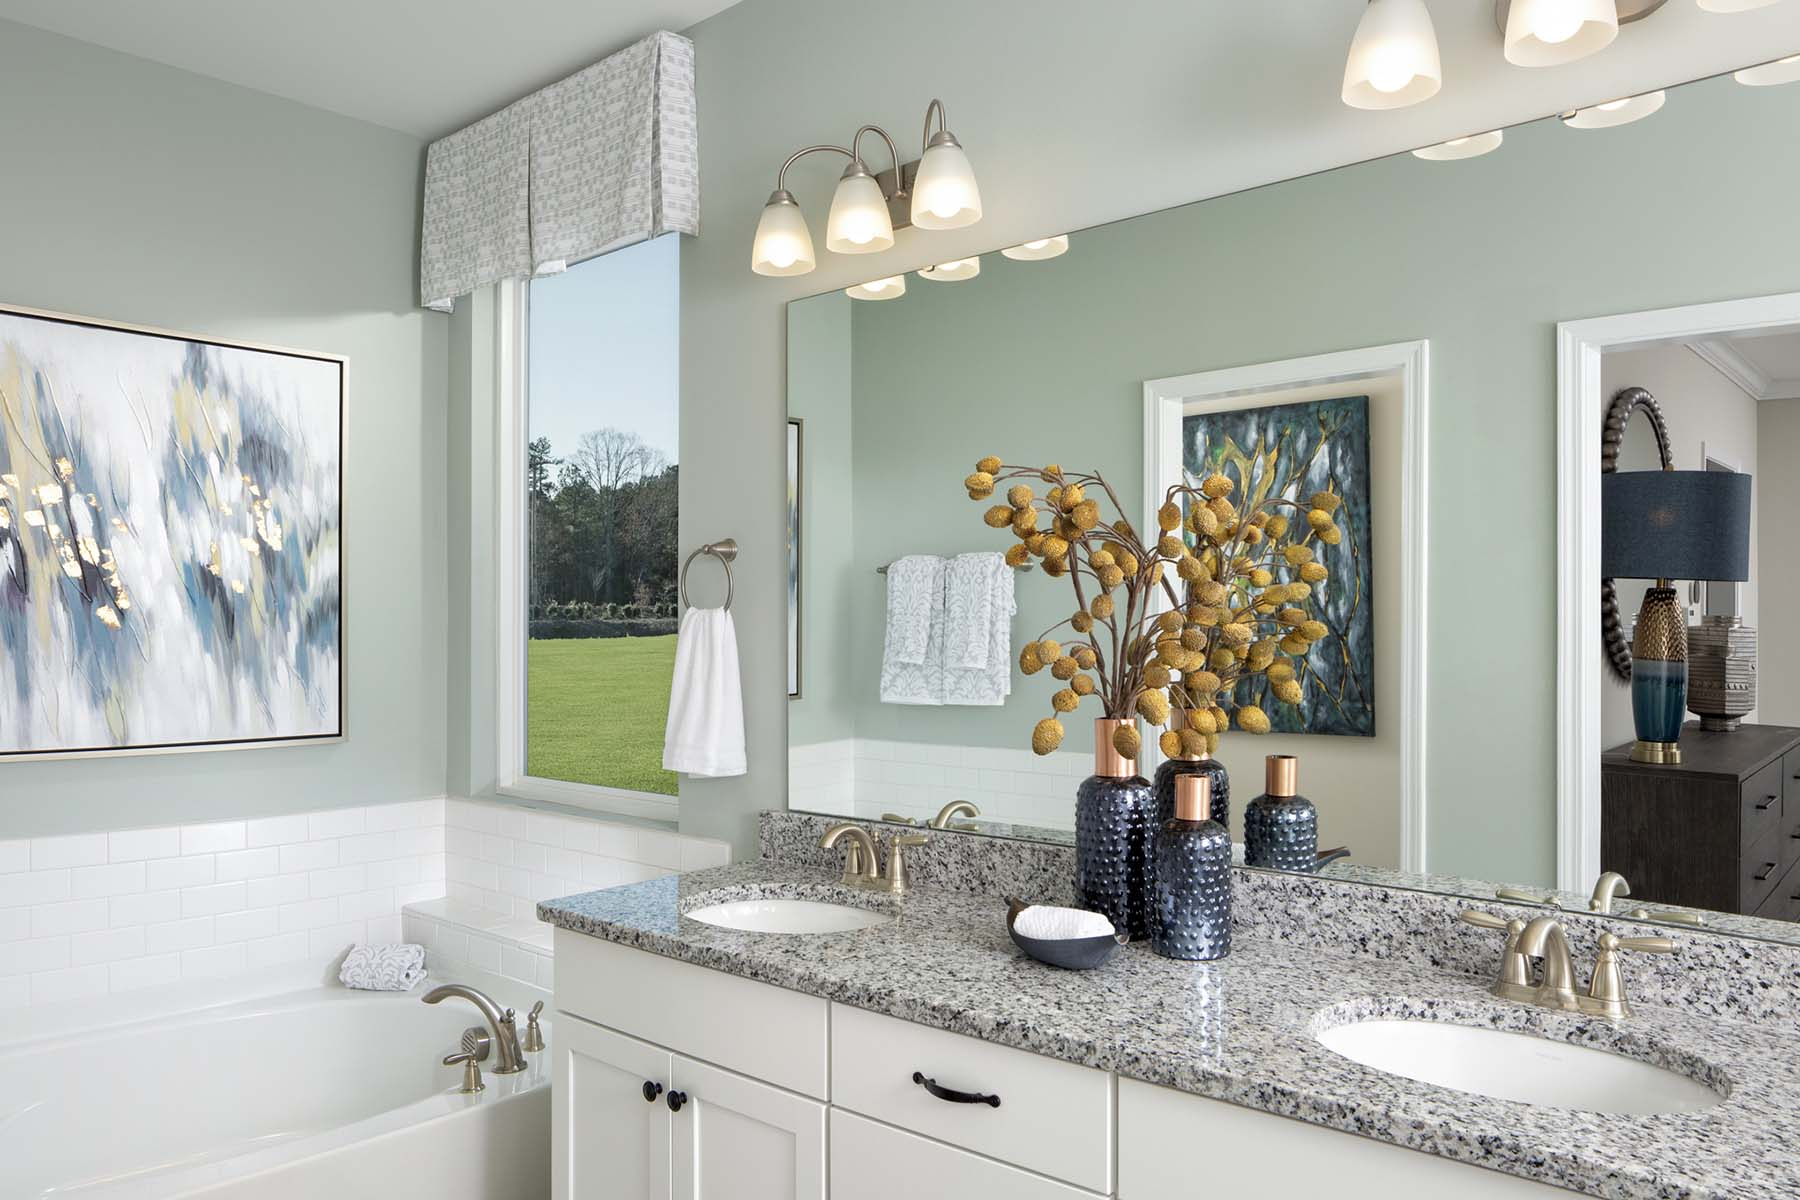 Braeburn Bathroom_Master Bath in Indian Trail North Carolina by Mattamy Homes